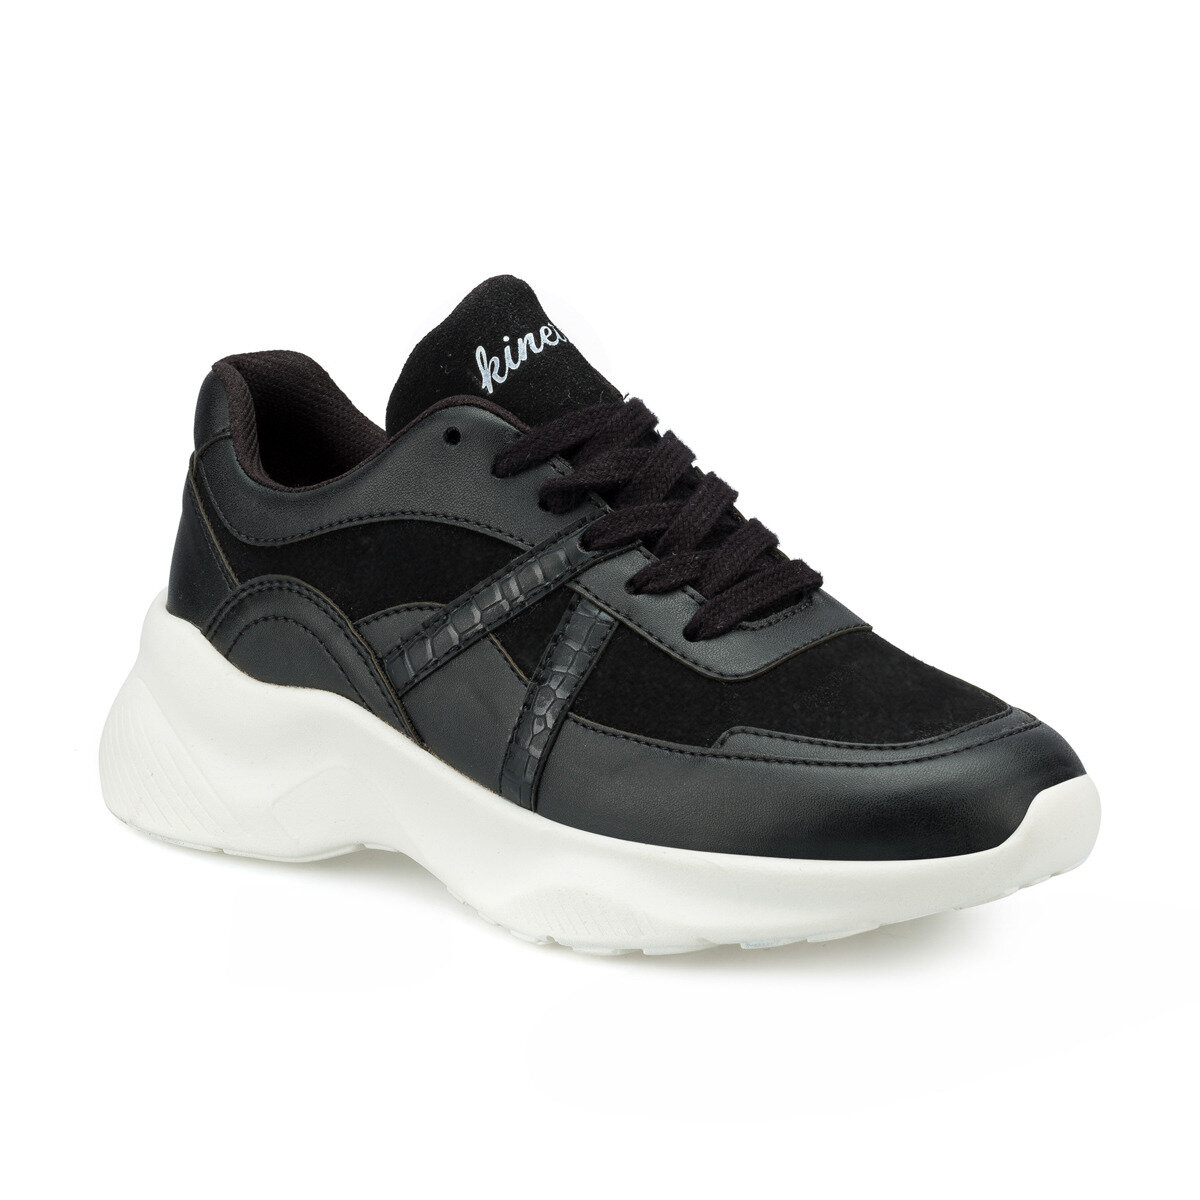 FLO AYEW Black Women 'S Sneaker Shoes KINETIX